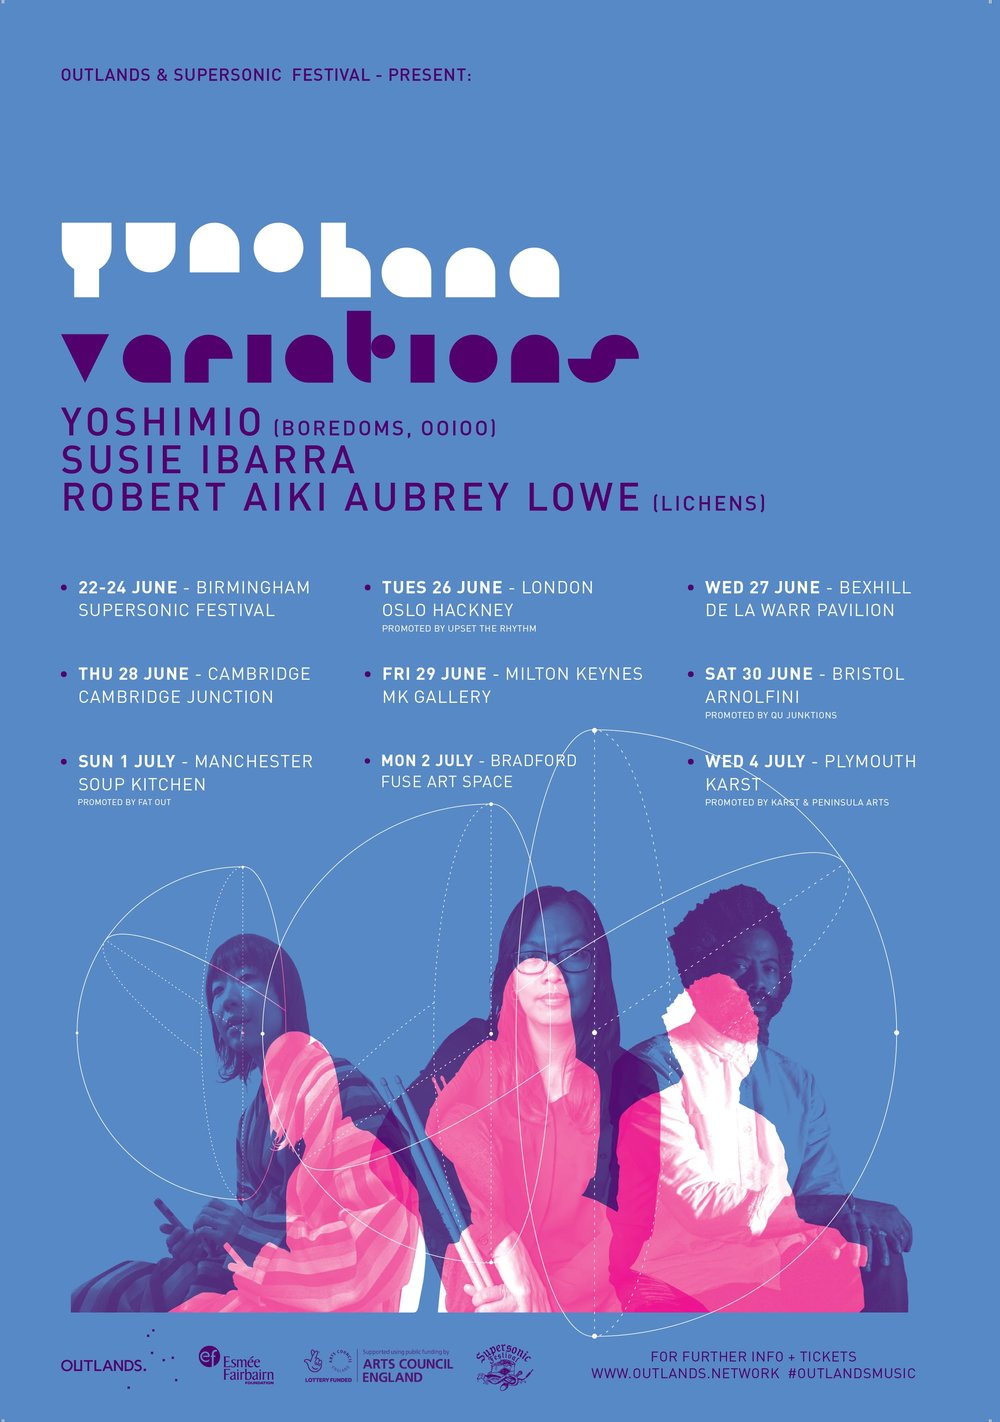 Yunohana Variations tour the UK – Supersonic Festival | 22-24 June 2018